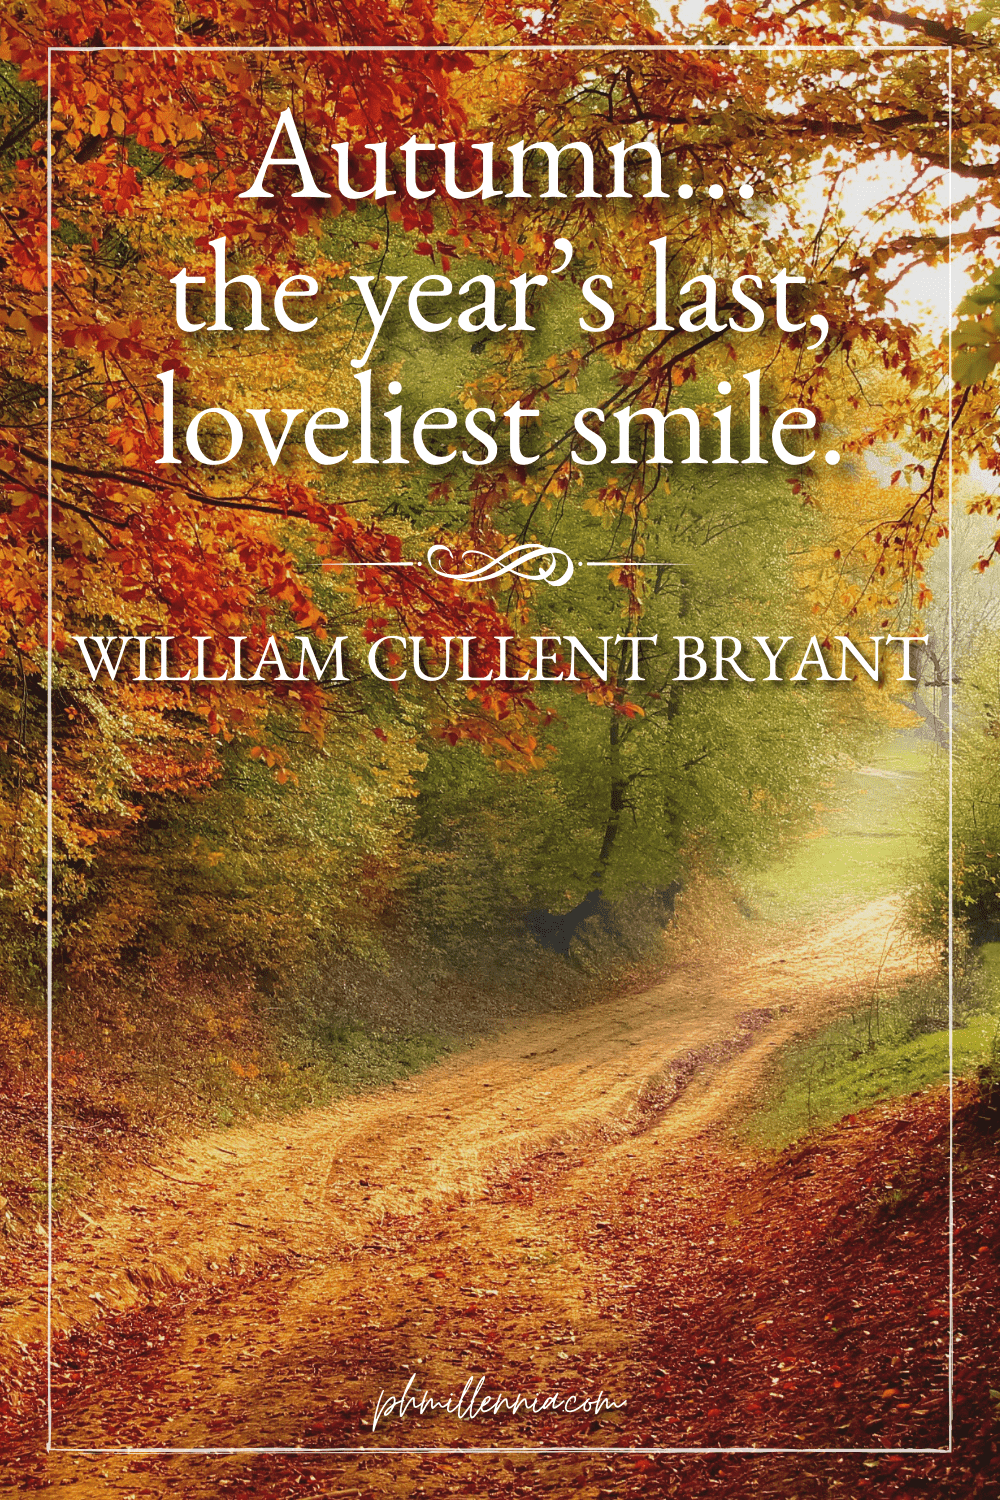 A graphic featuring an autumn quote/fall saying over an image of a woodland path through a forest full of trees in autumn/fall